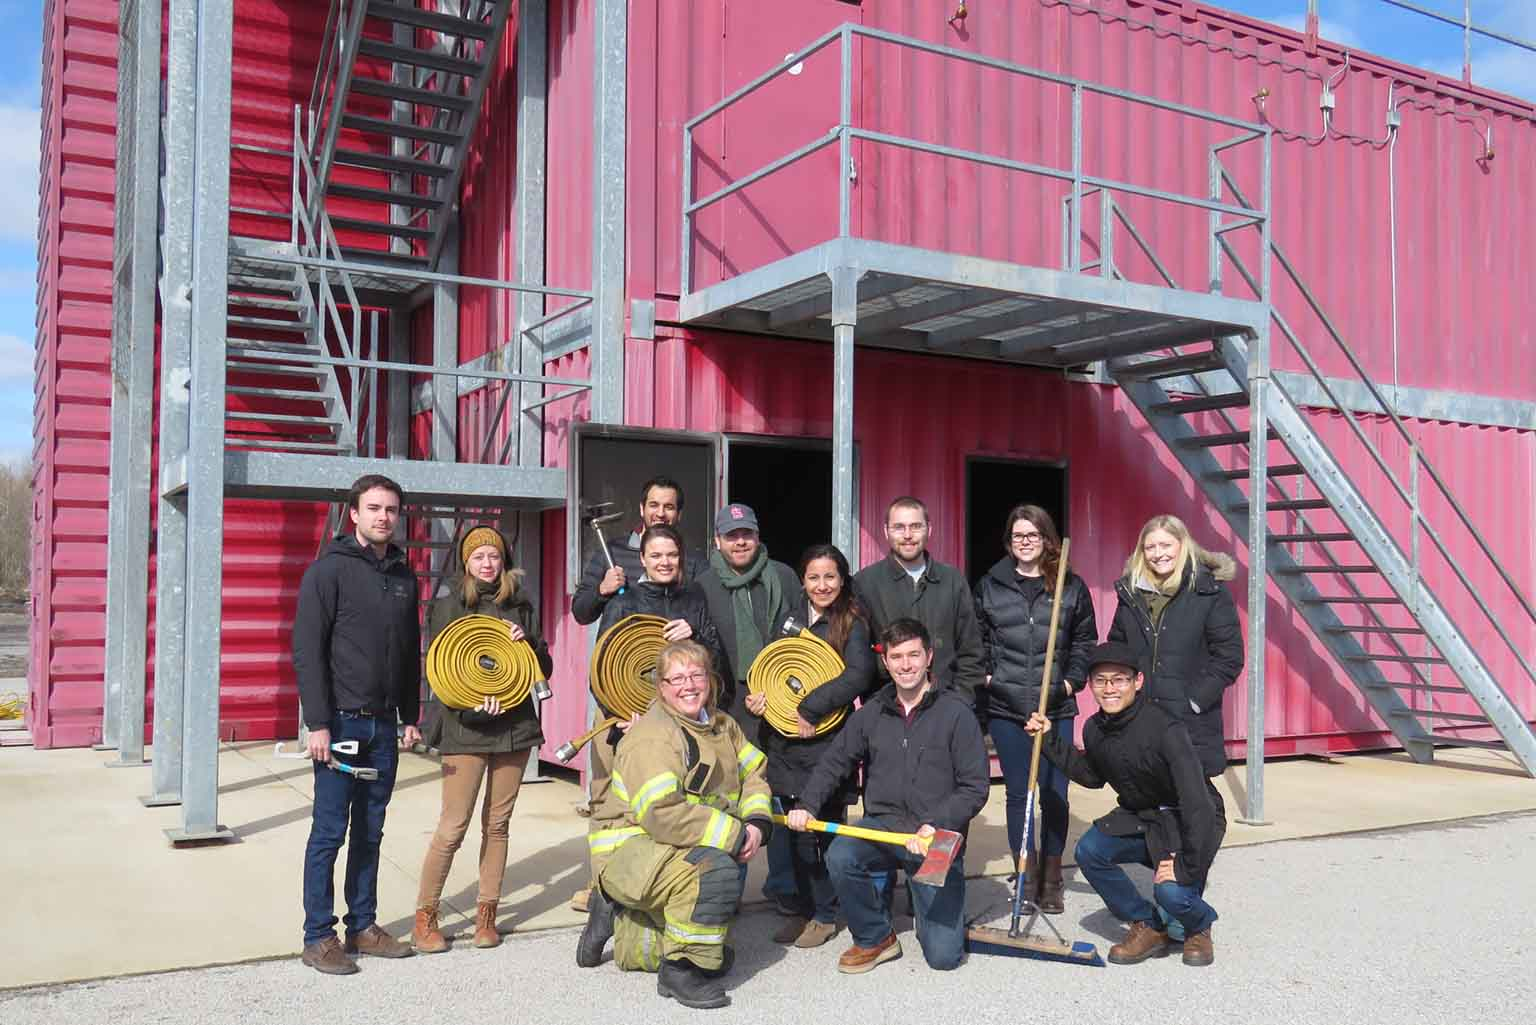 Students pose with fire equipment at the Bloomington Public Safety Training Center